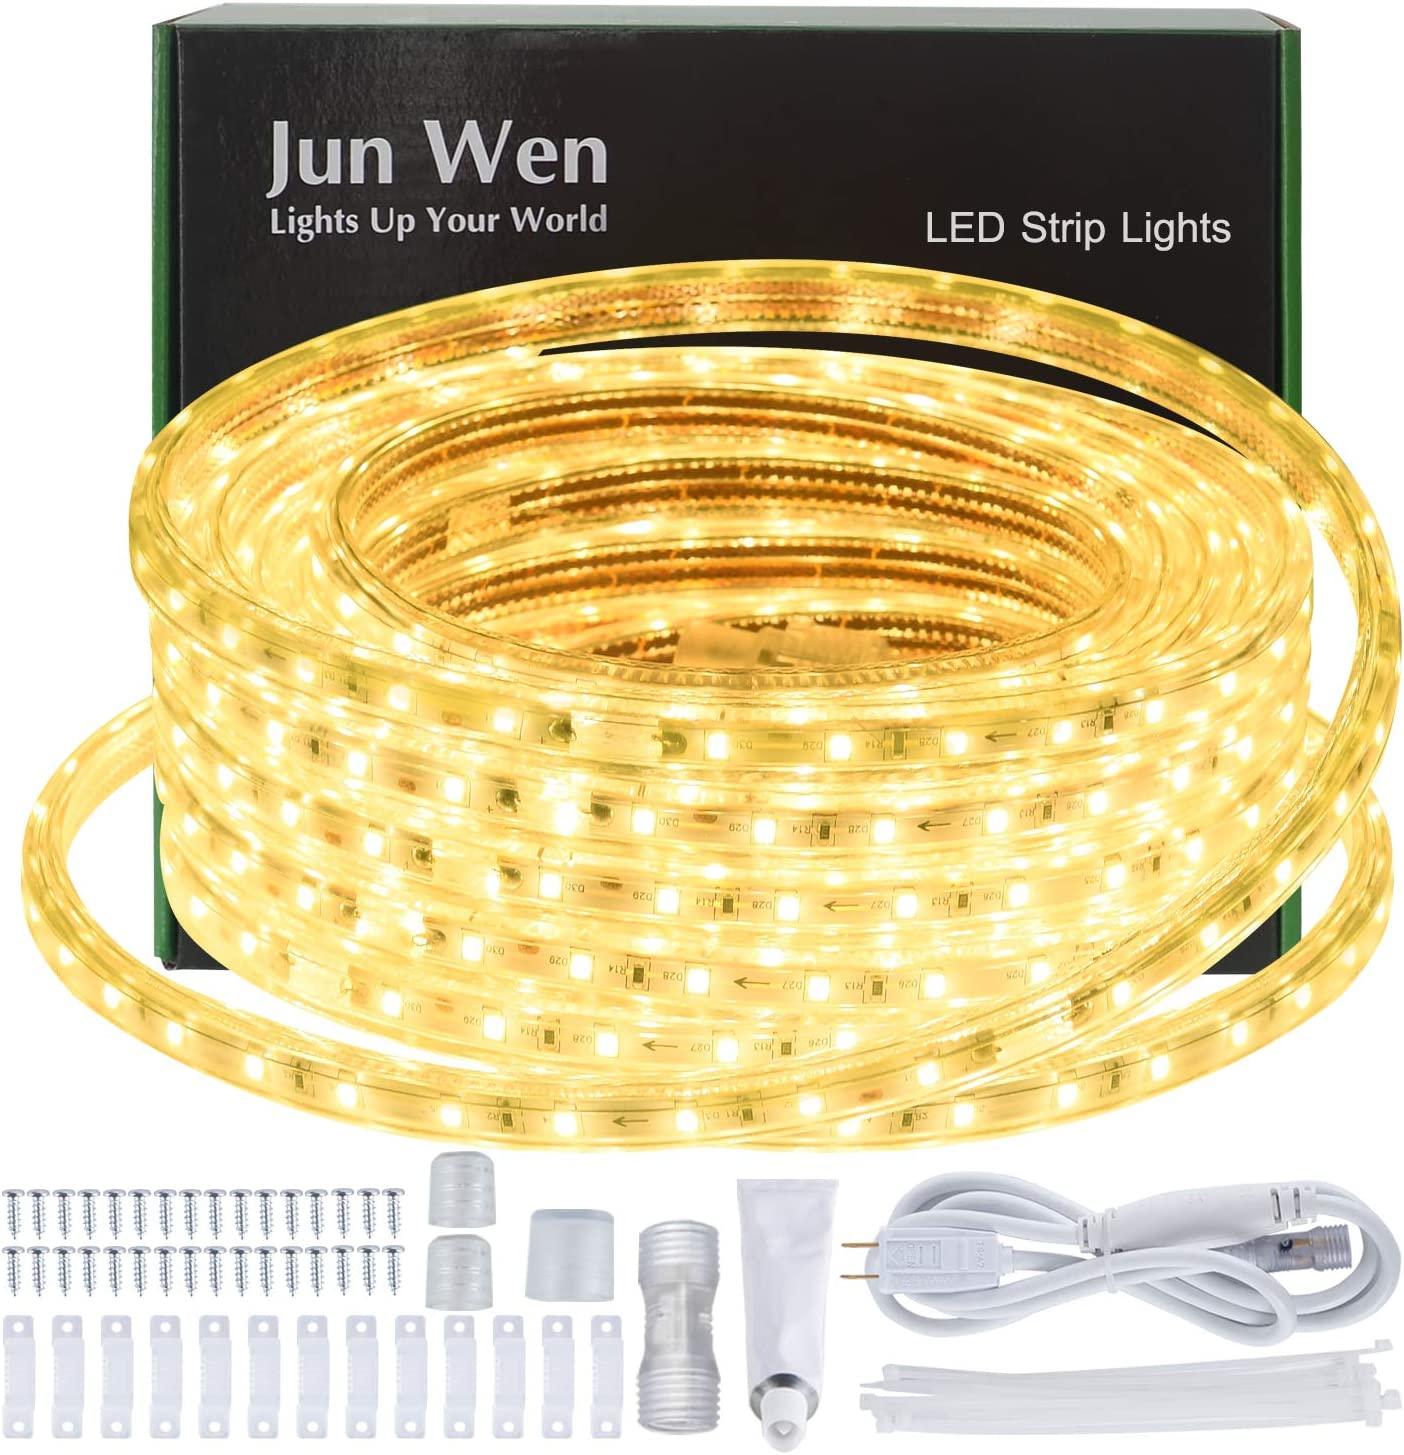 JUNWEN LED Strip National Max 83% OFF uniform free shipping Lights Outdoor Rope Warm Waterproof 40ft